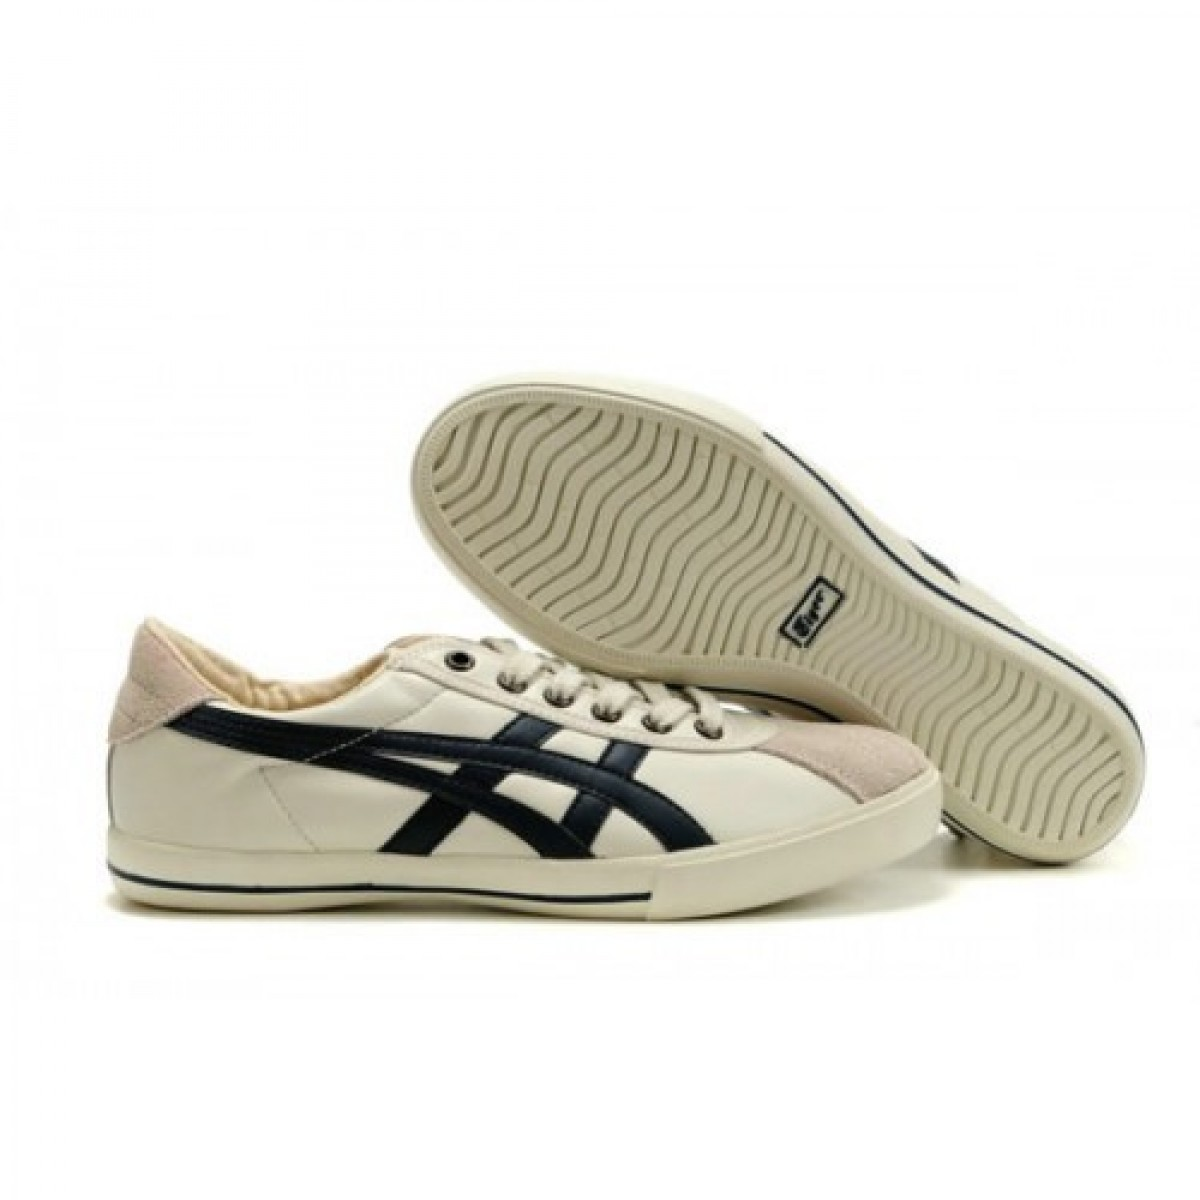 NW6876 Soldes Asics Onitsuka Tiger Rotation 77 Chaussures Noir Blanc 24755773 Pas Cher